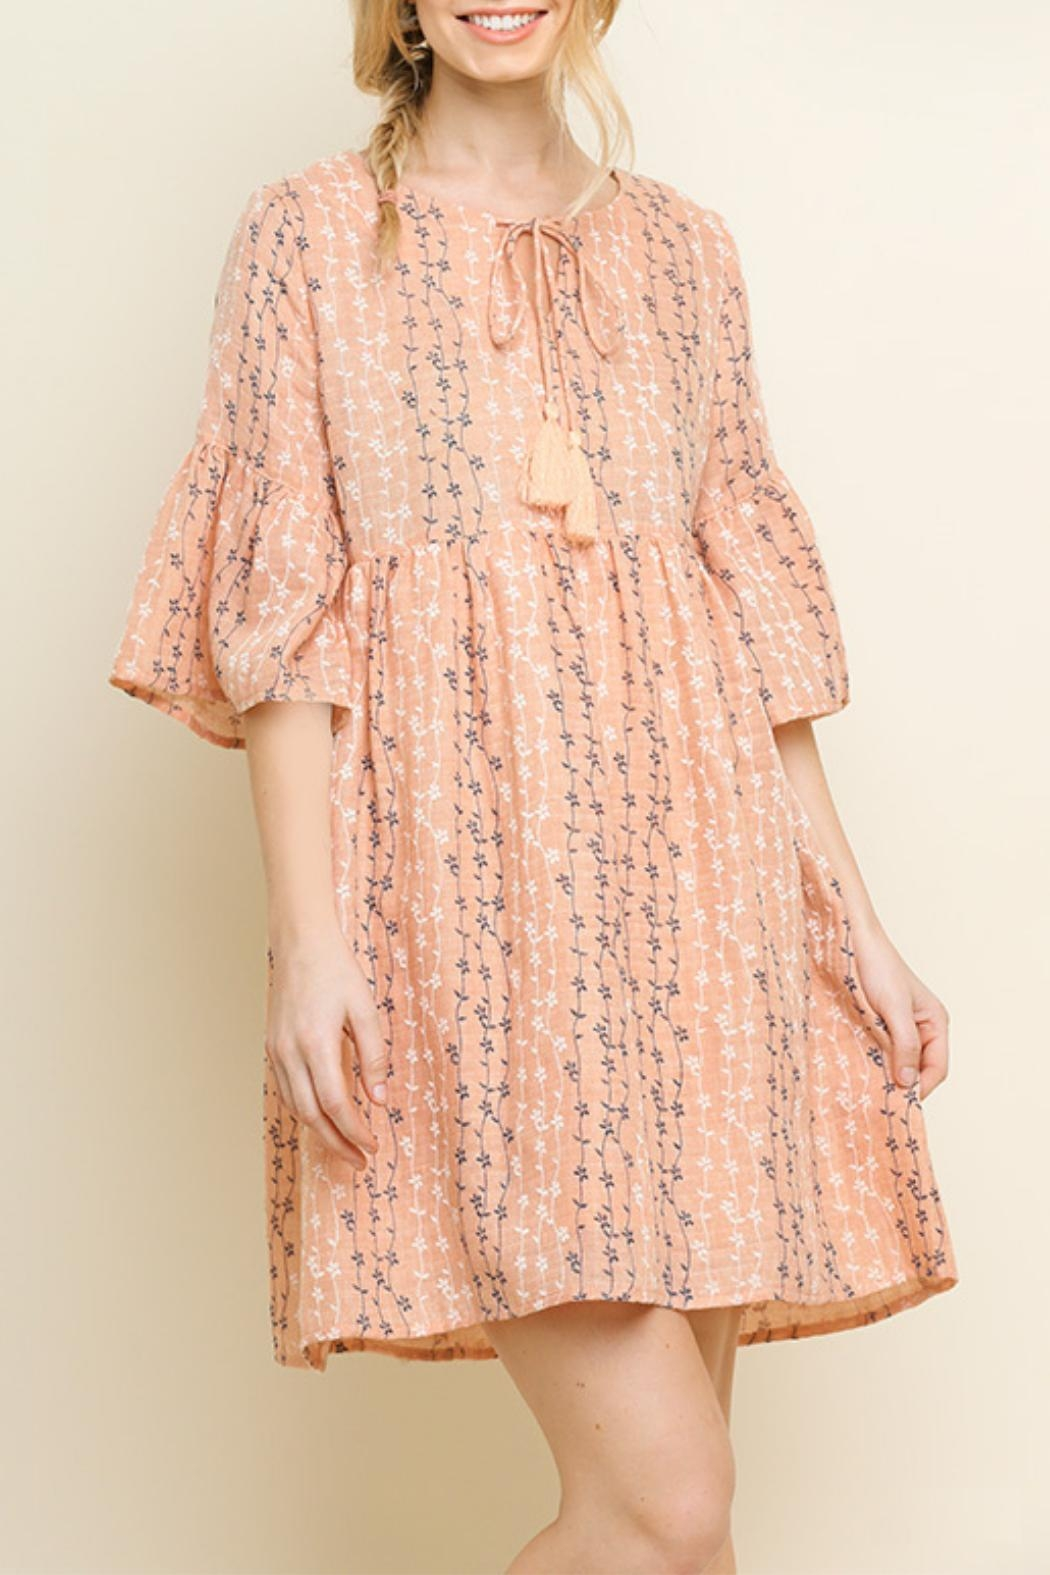 Umgee USA Blush Babydoll Dress - Main Image